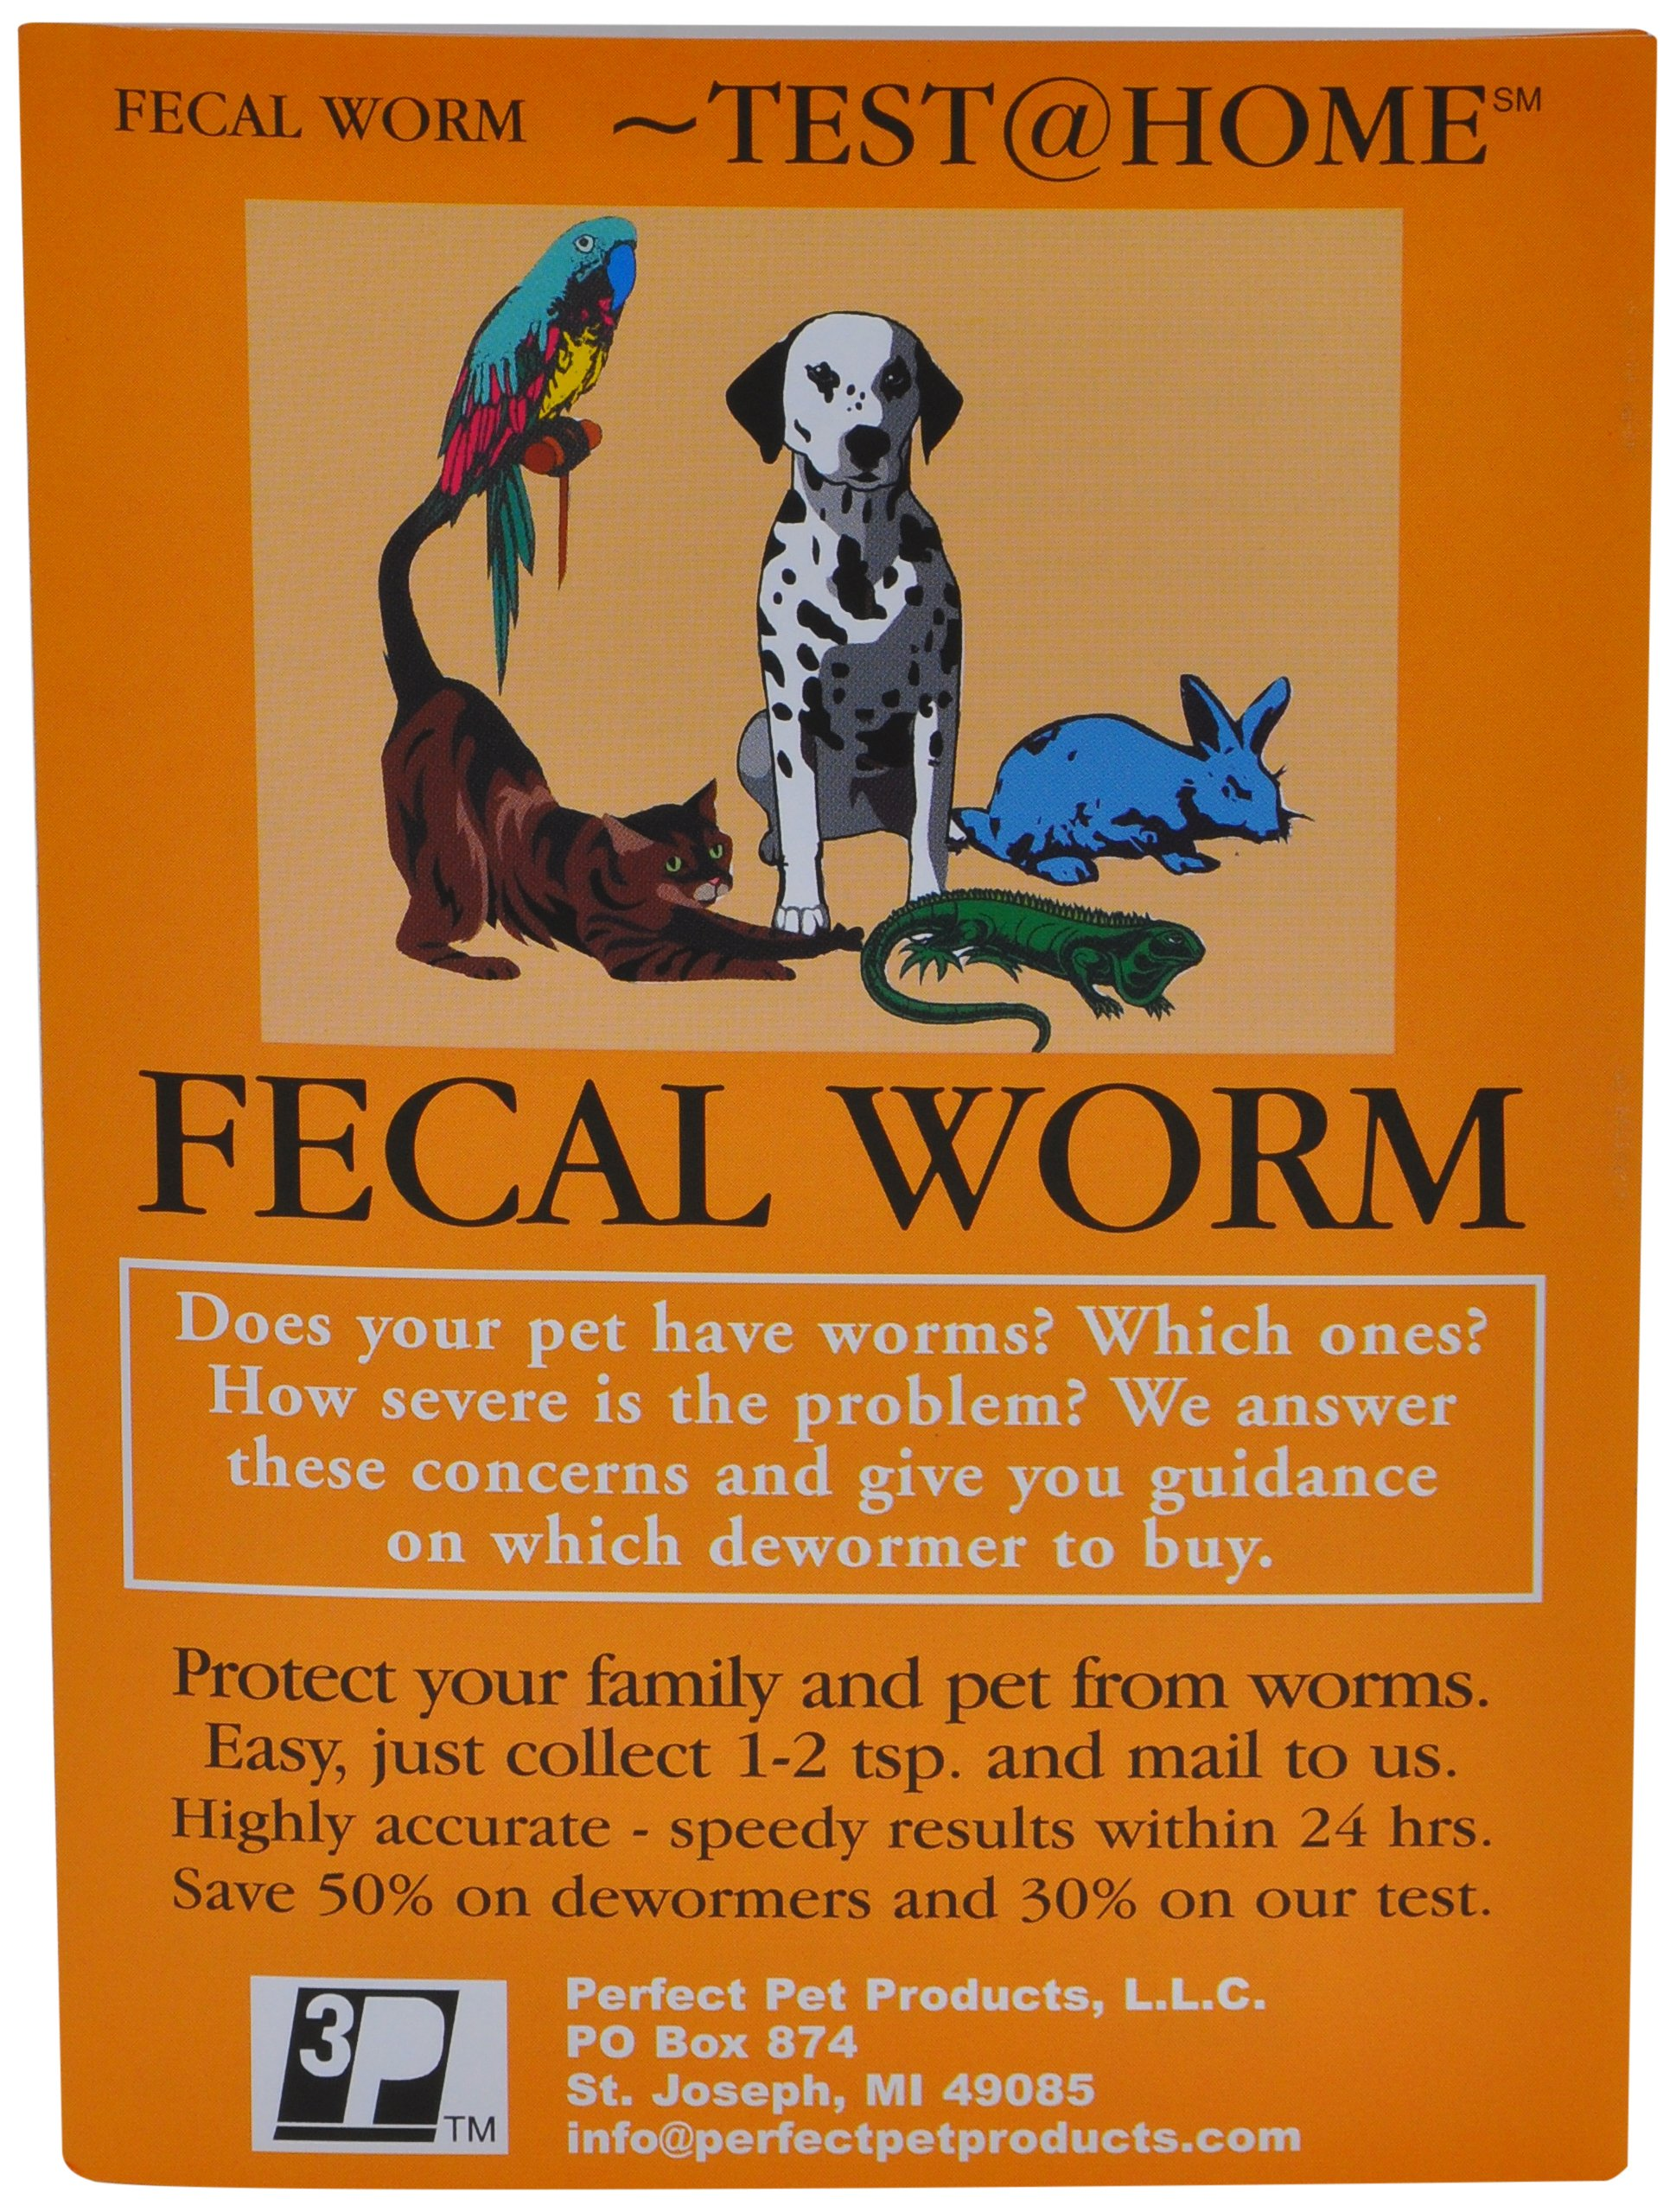 FECAL WORM TEST for All types of Pets(Dogs Cats Birds Reptiles Rabbits Lions